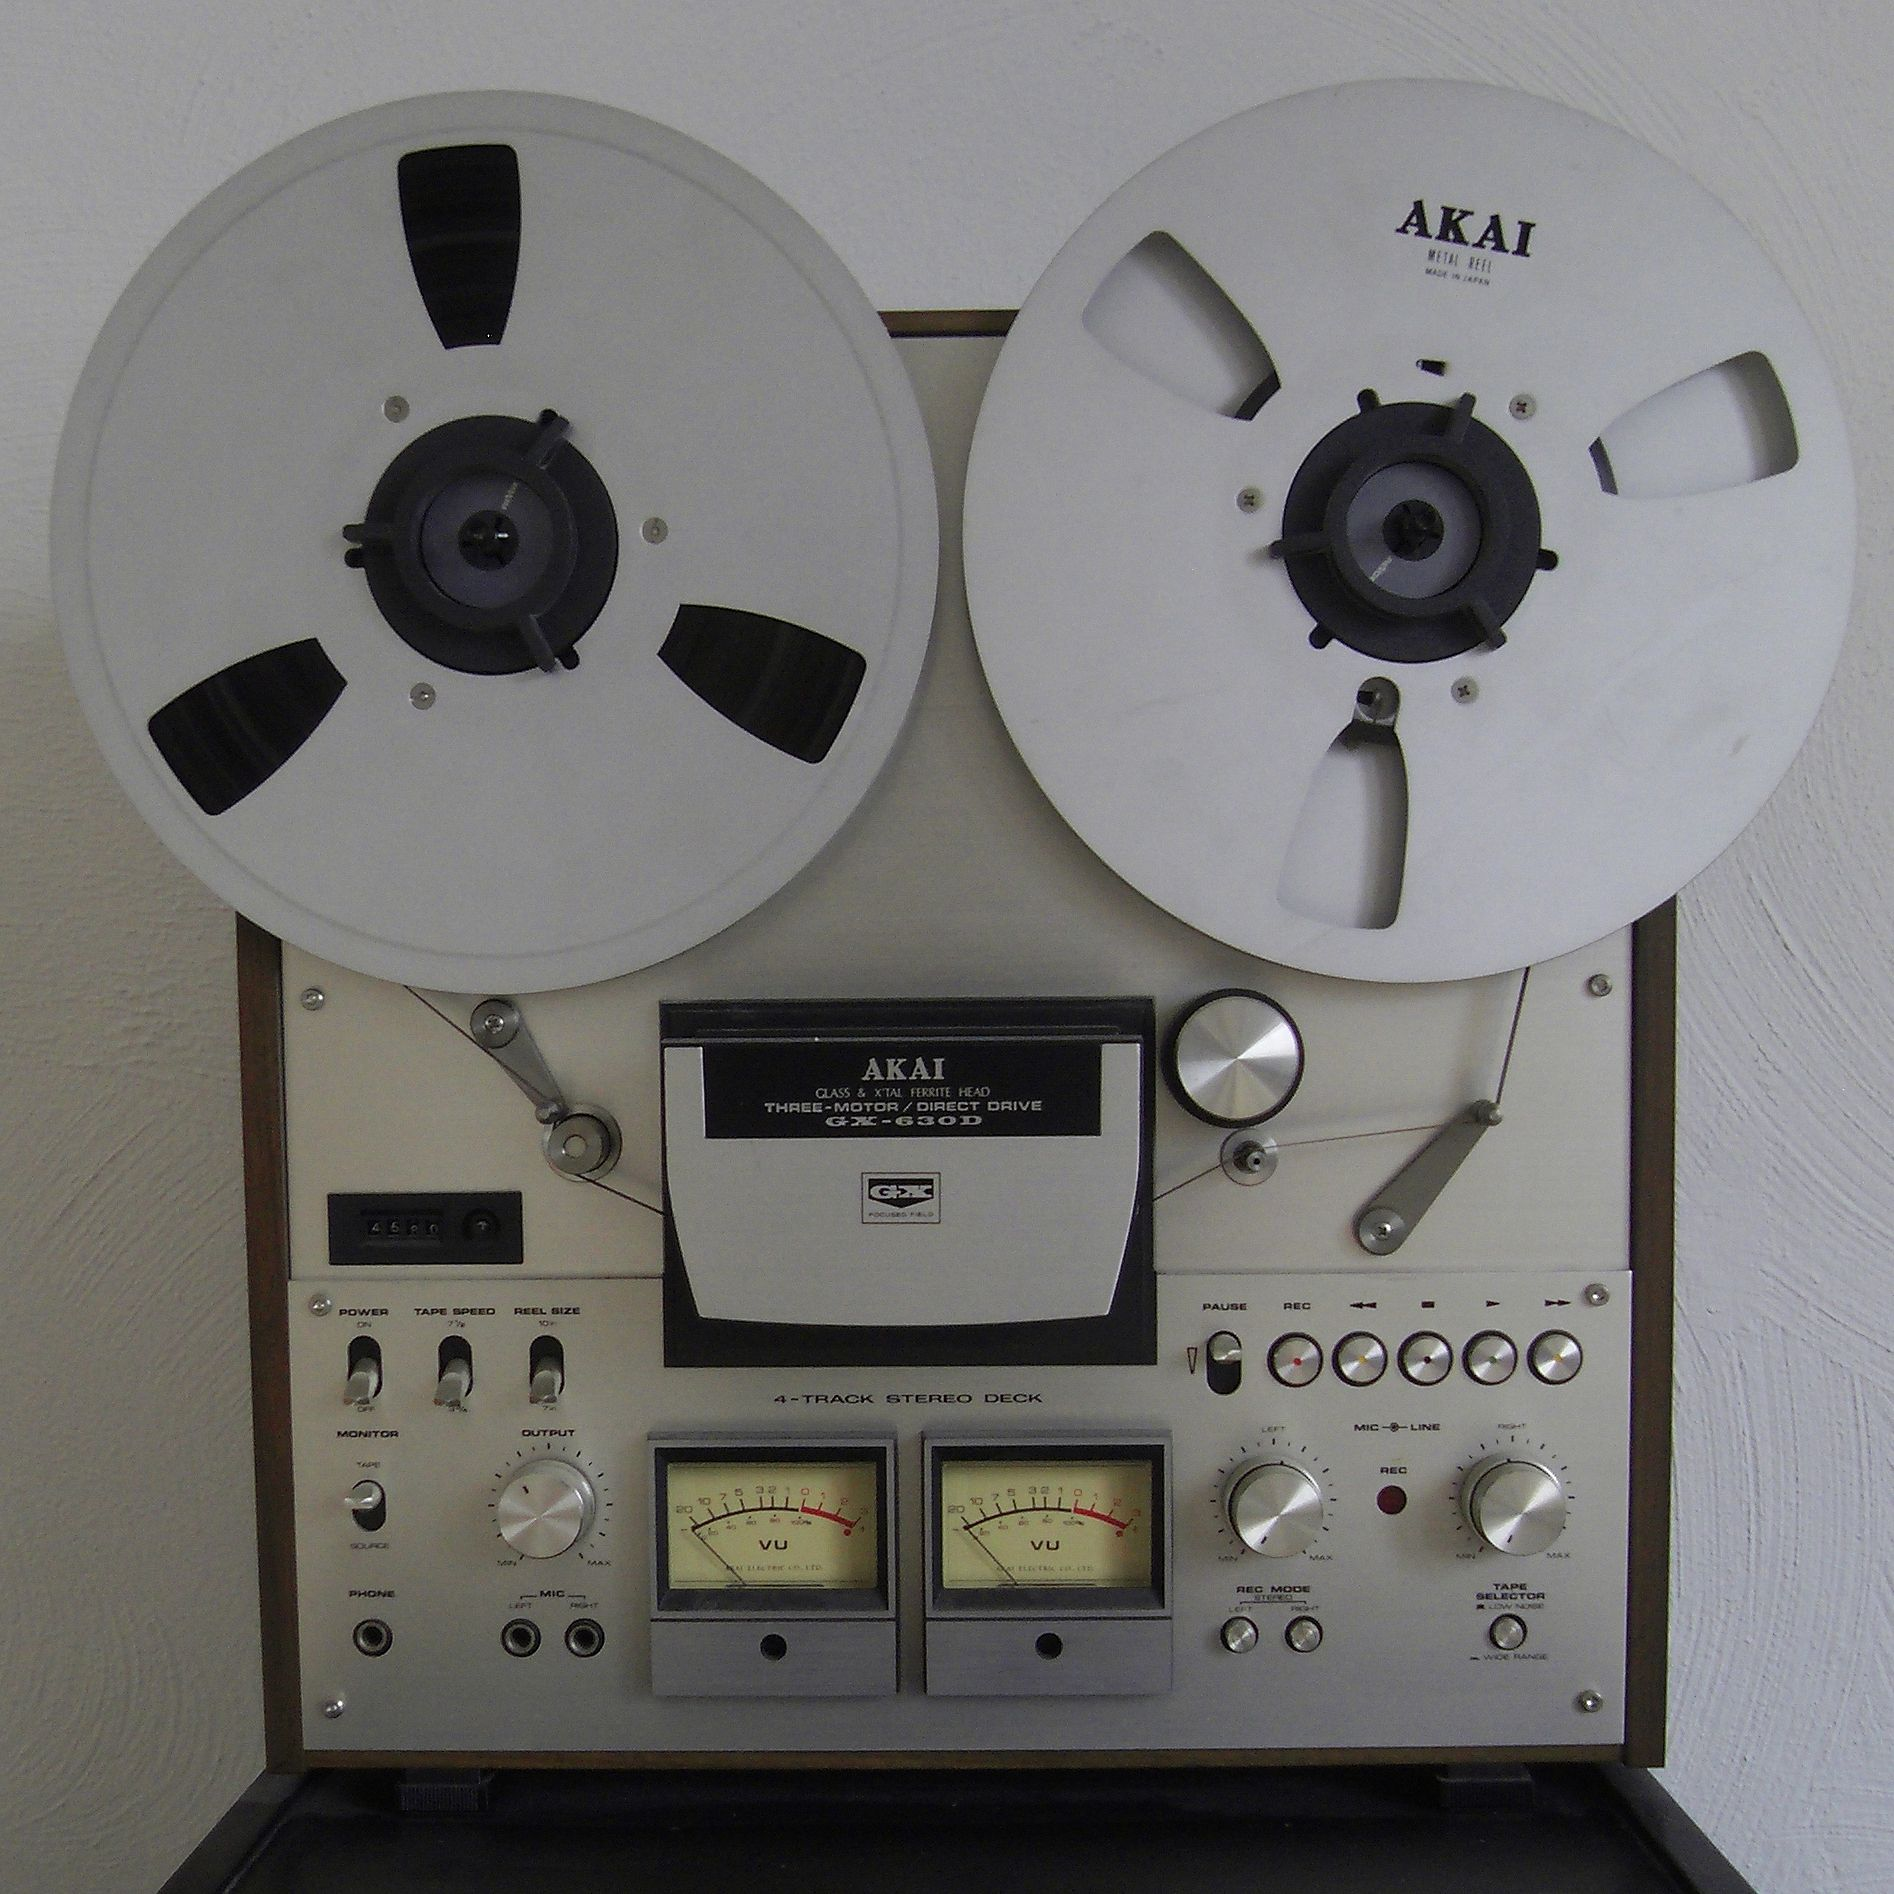 Akai audio reel to reel recorder Led tv, Akai